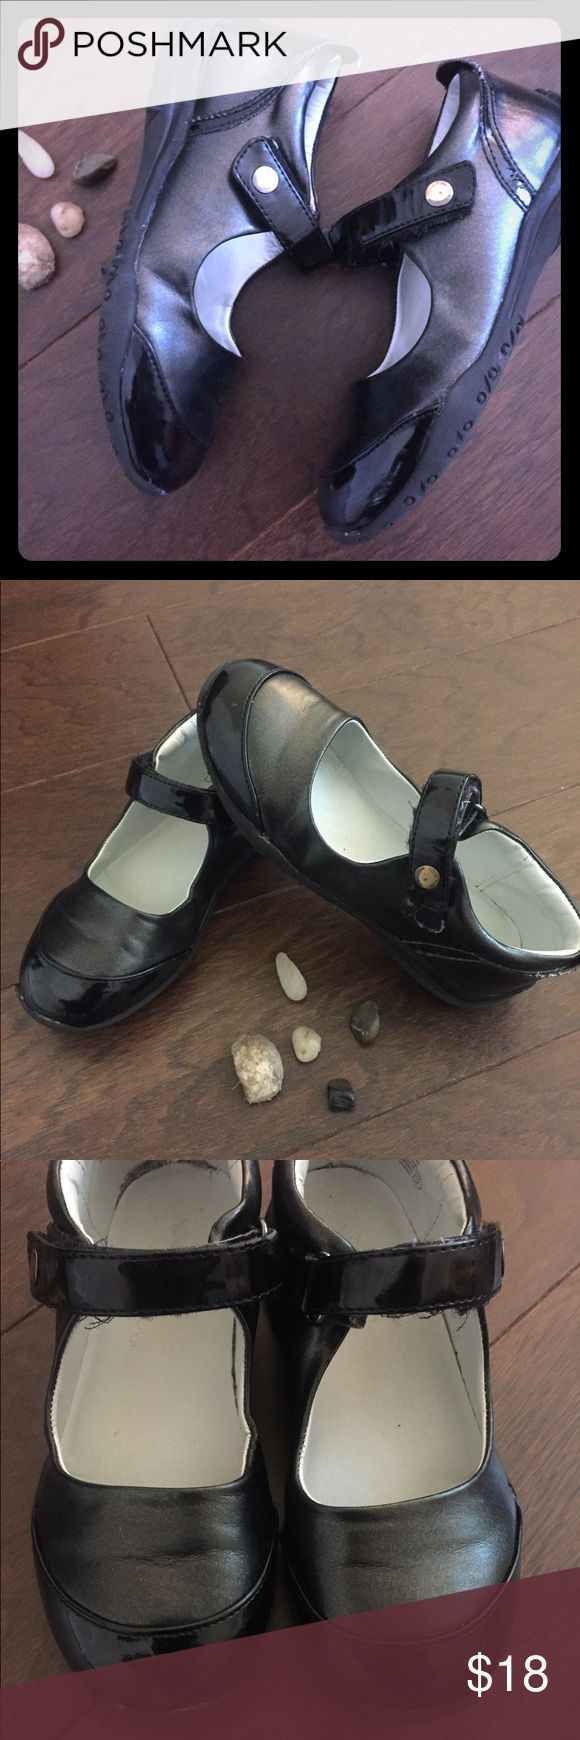 Nordstrom Girls Black Shoes Very durable and great quality. If only the shoe grew with the feet! 😊. Nordstrom Shoes Dress Shoes